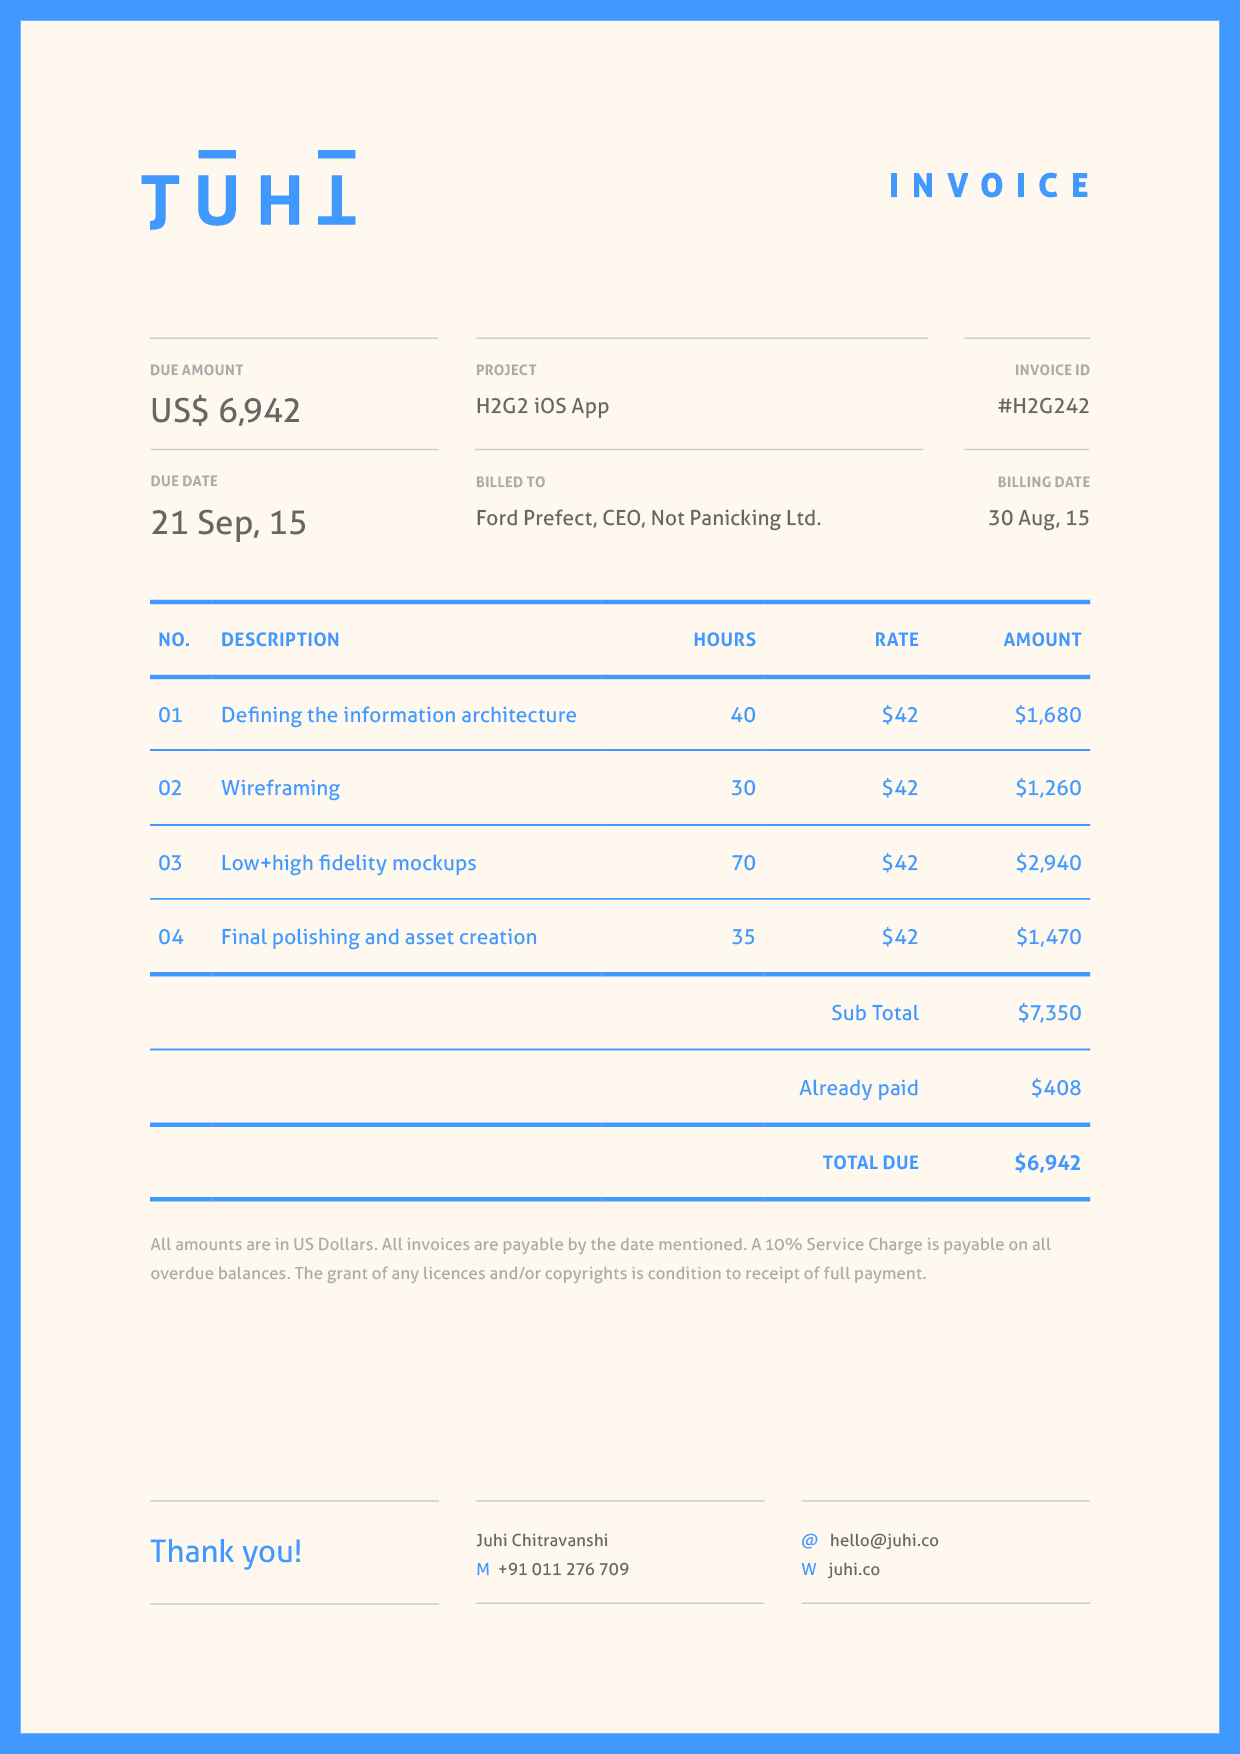 Hius  Pleasing Dont Hold Back On Your Invoice  Inspiring Designs  With Marvelous Invoice By Juhi Chitravanshi Follow With Attractive Car Rental Receipt Template Also Paper Receipt Organizer In Addition Down Payment Receipt Template And Healthy Receipts As Well As Receipt For Quiche Additionally Osceola County Business Tax Receipt From Inspirationfeedcom With Hius  Marvelous Dont Hold Back On Your Invoice  Inspiring Designs  With Attractive Invoice By Juhi Chitravanshi Follow And Pleasing Car Rental Receipt Template Also Paper Receipt Organizer In Addition Down Payment Receipt Template From Inspirationfeedcom